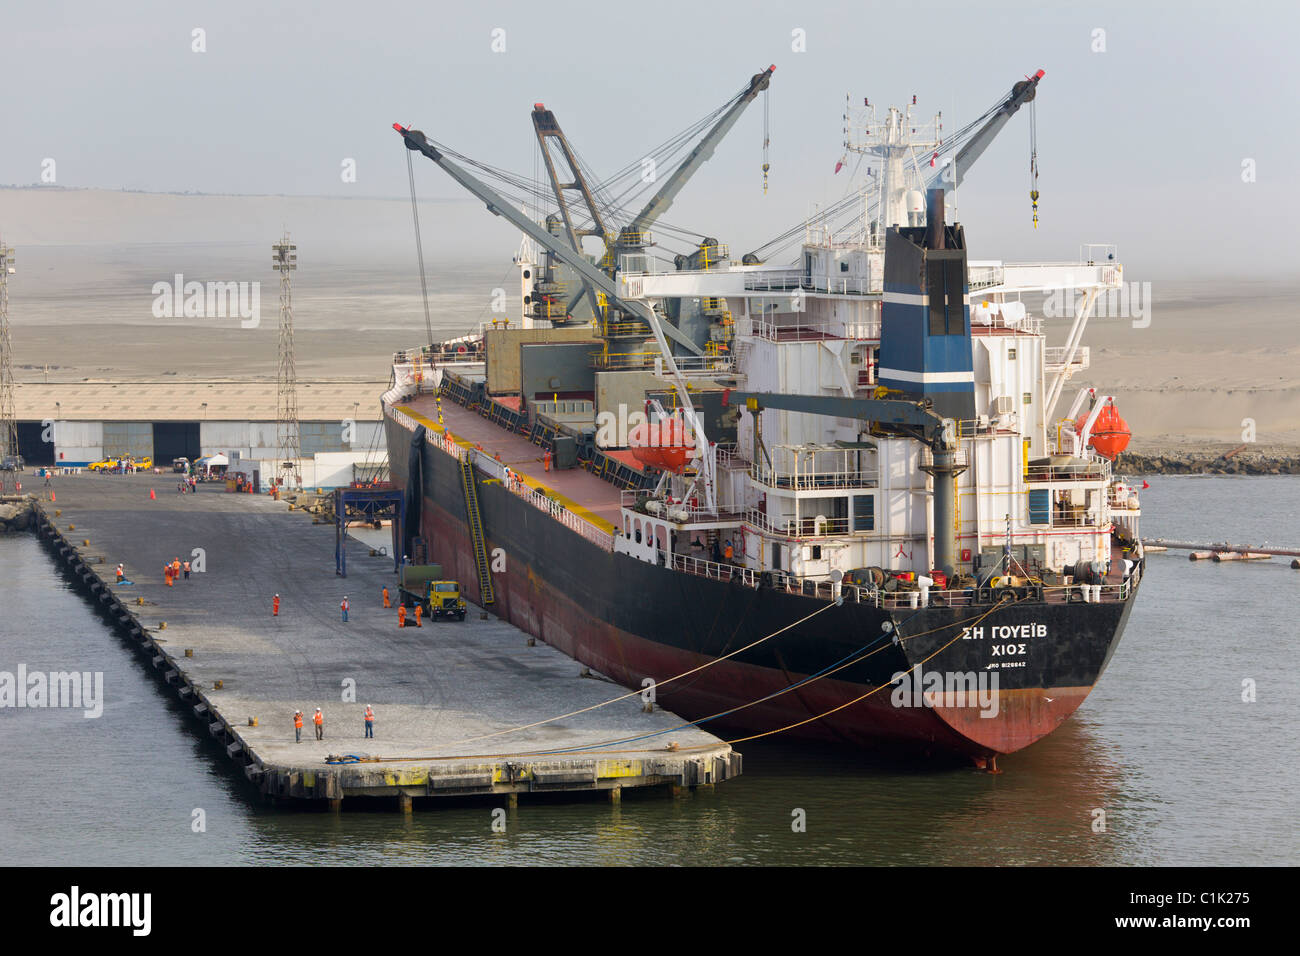 Cargo ship docked at the port of Salaverry, Trujillo, Peru - Stock Image